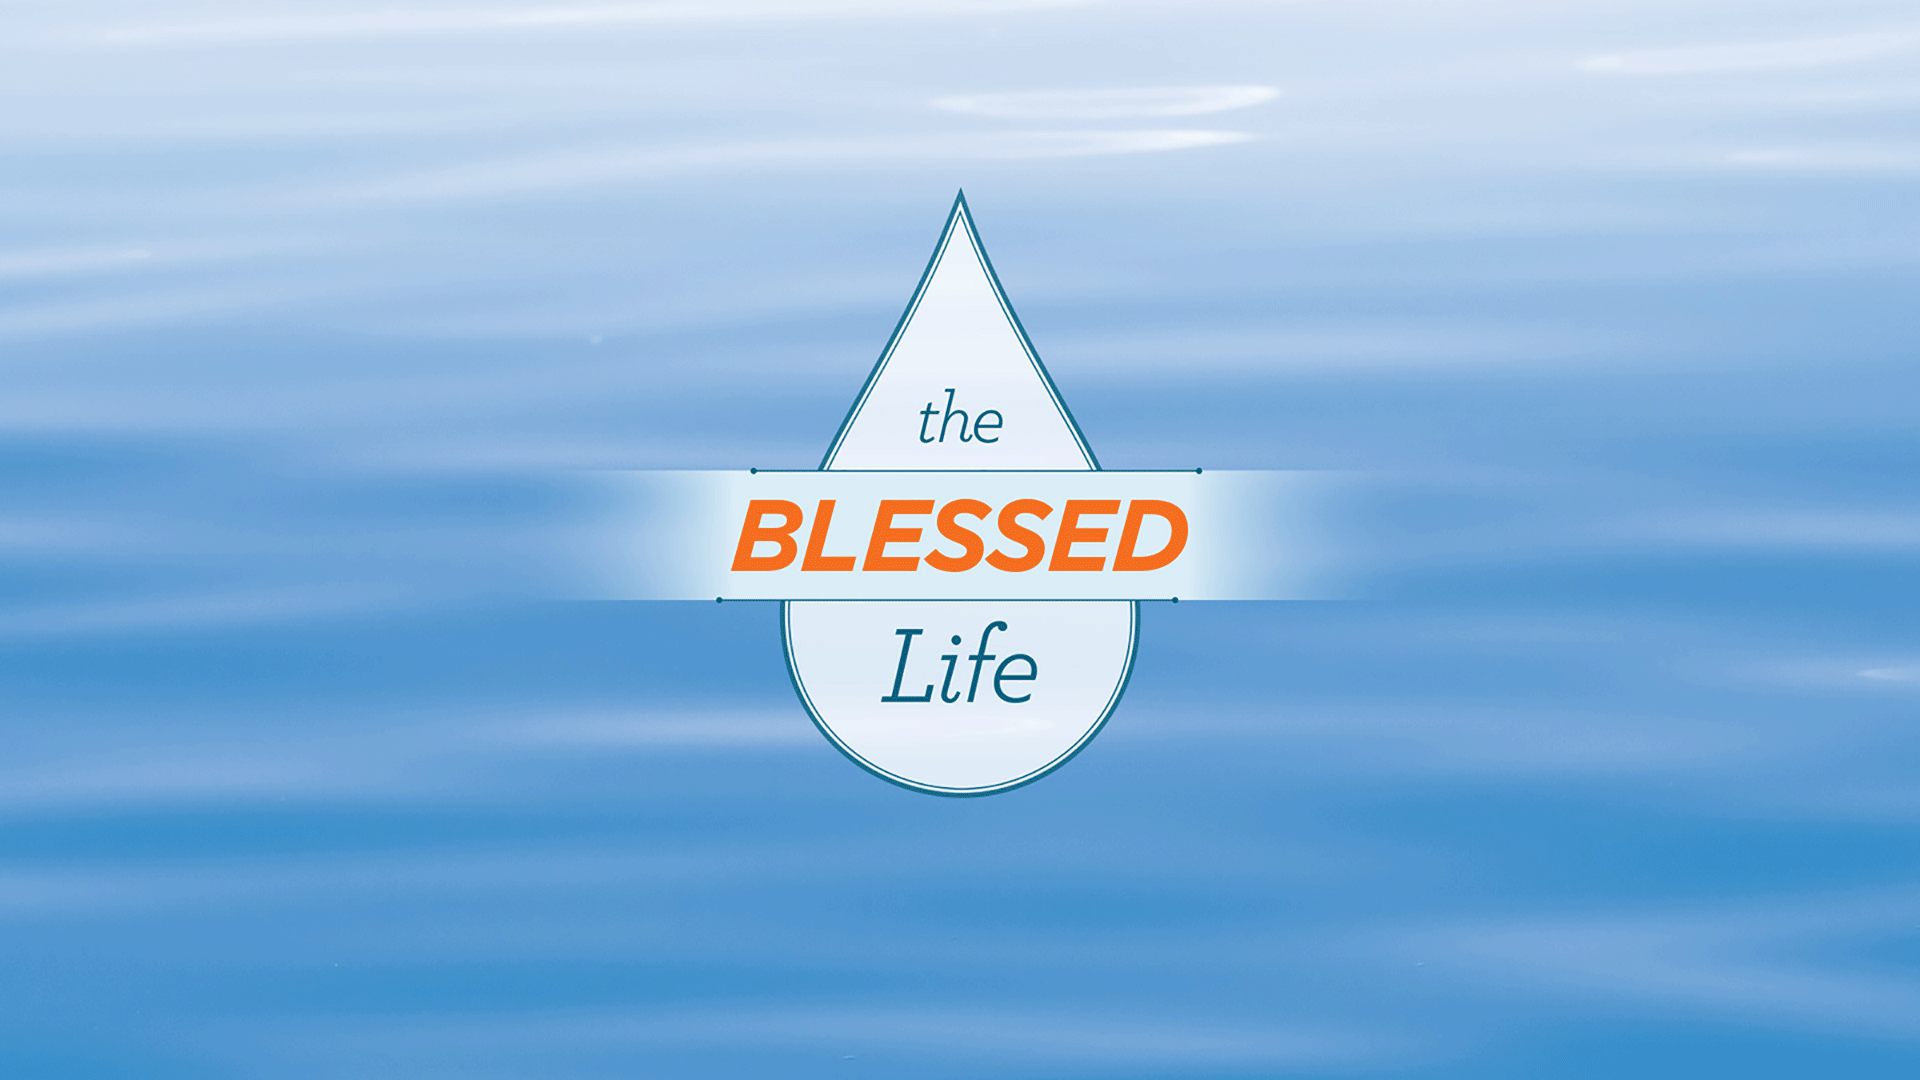 BlessedLife-1920x1080.png